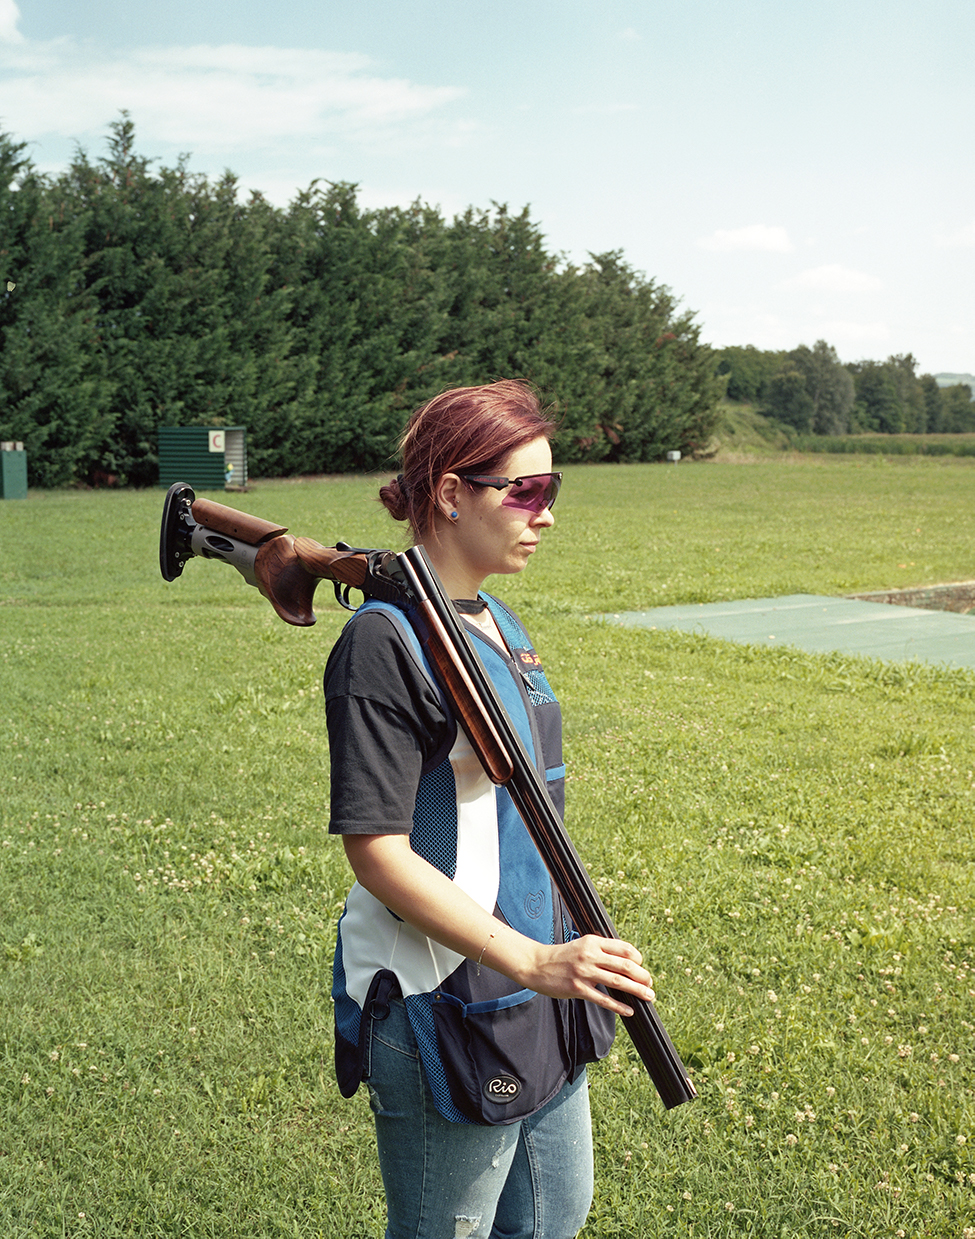 Montebello, Italy, 2018